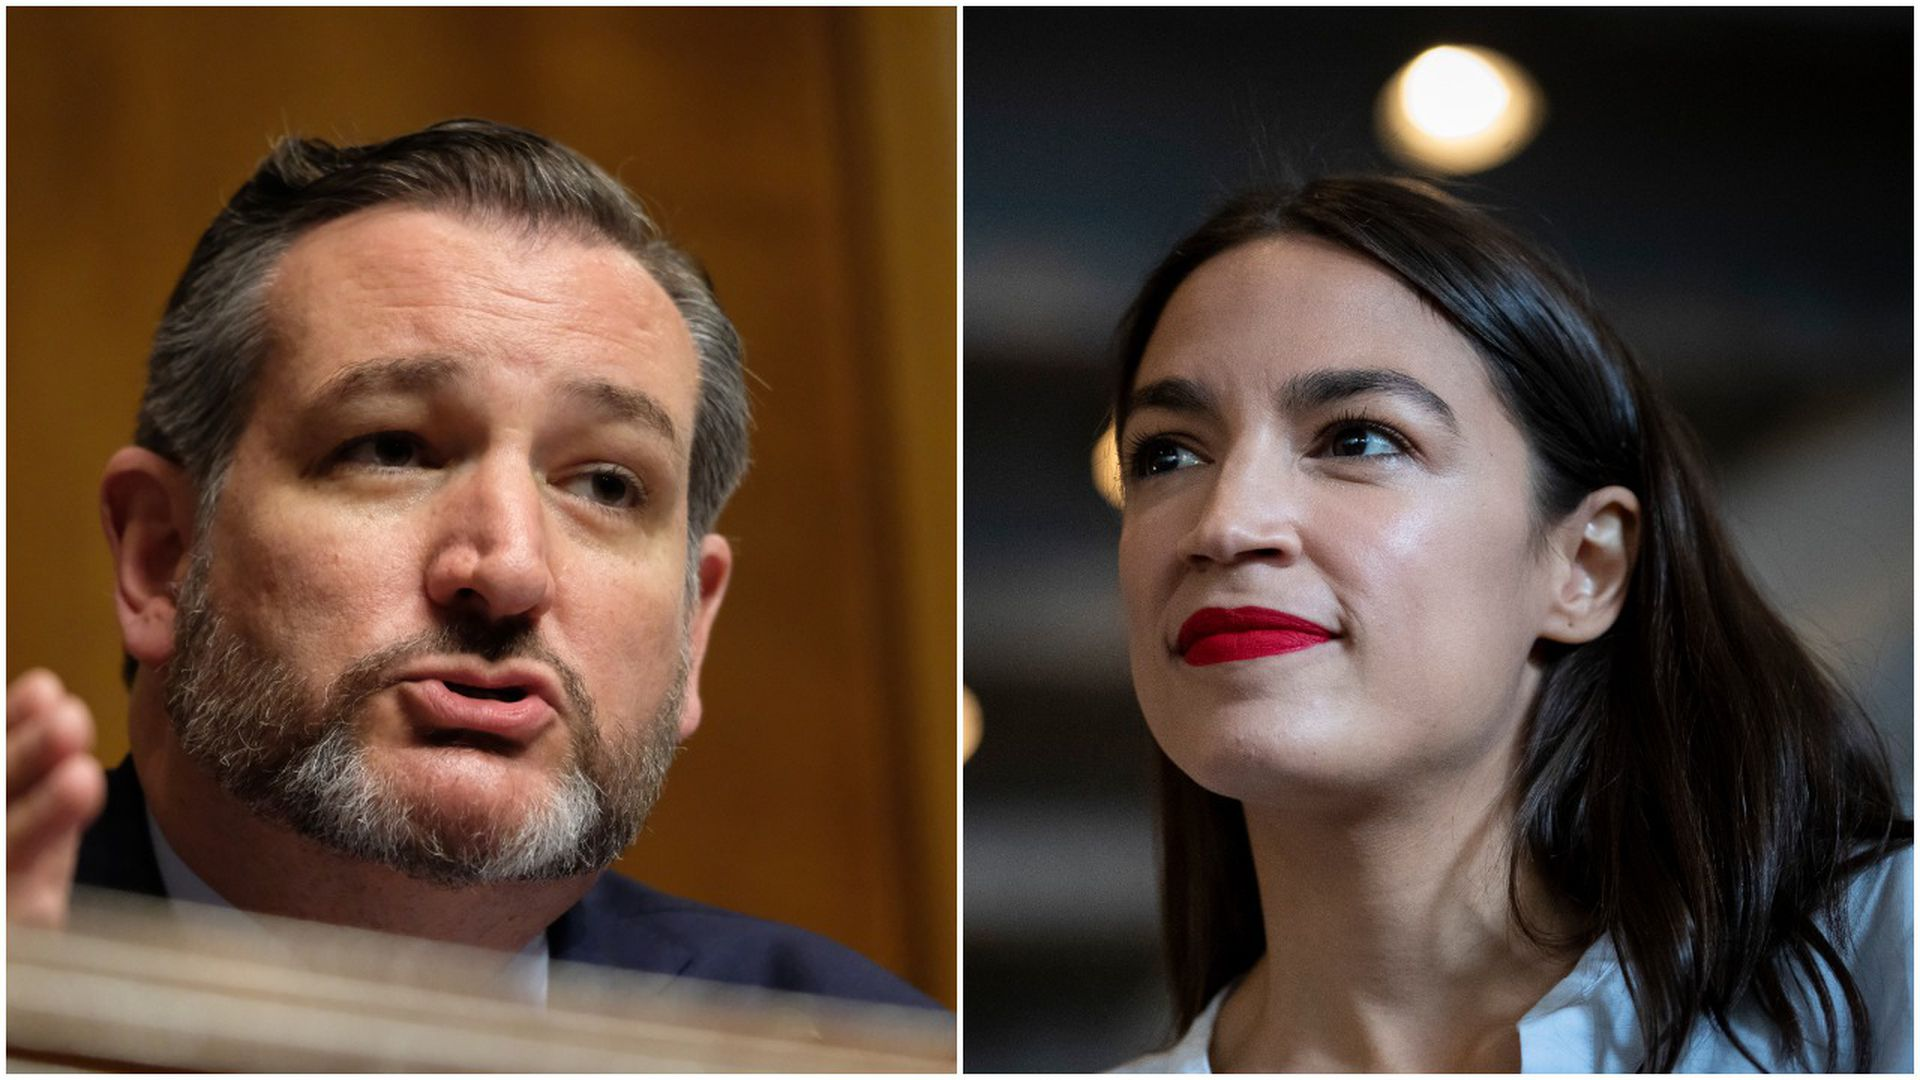 This image is a split screen of Ted Cruz speaking on the left and AOC listening on the right.